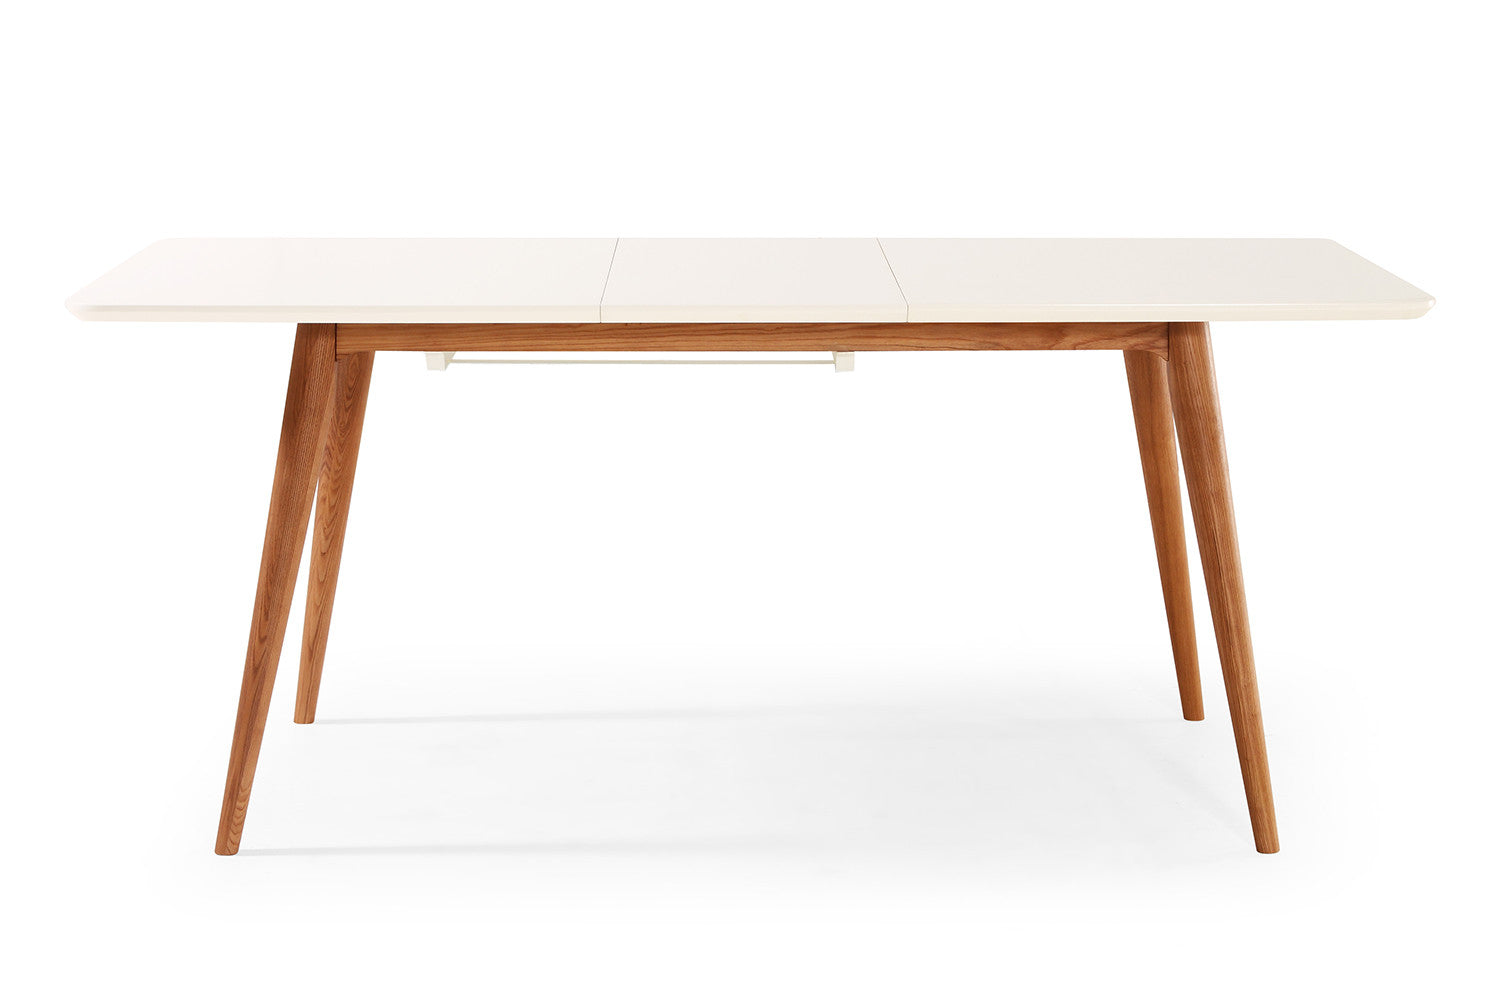 Table de salle manger extensible scandinave wyna dewarens for Table de salle a manger design scandinave